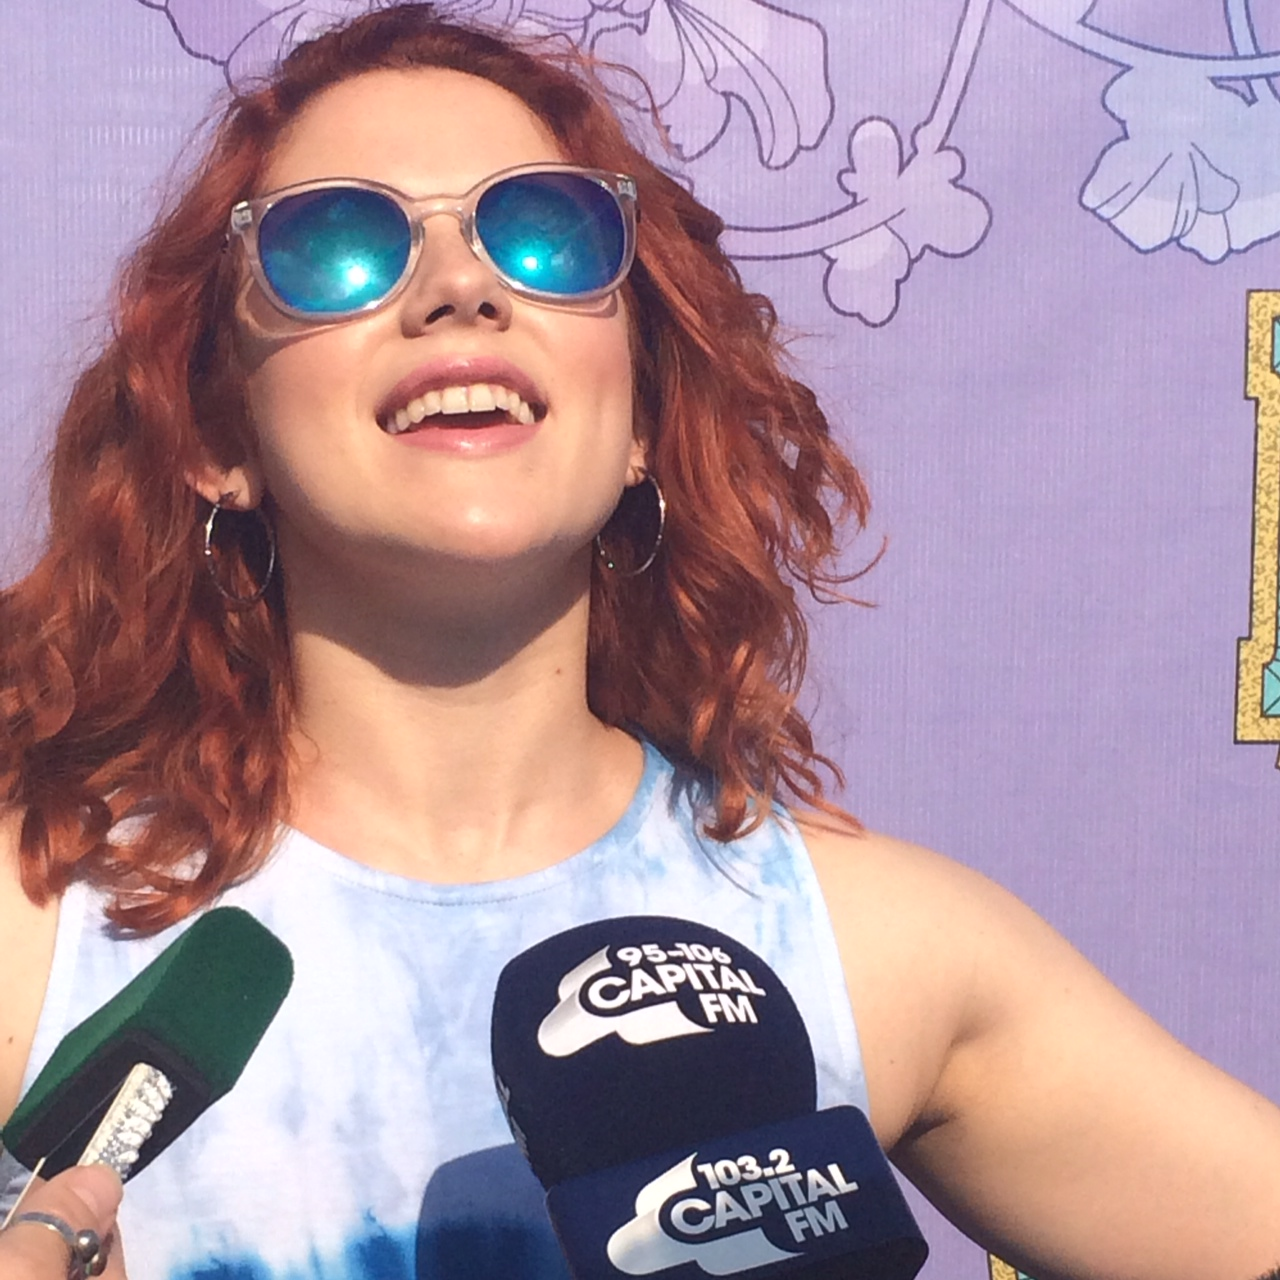 Katy B at the Isle of Wight Festival 2014